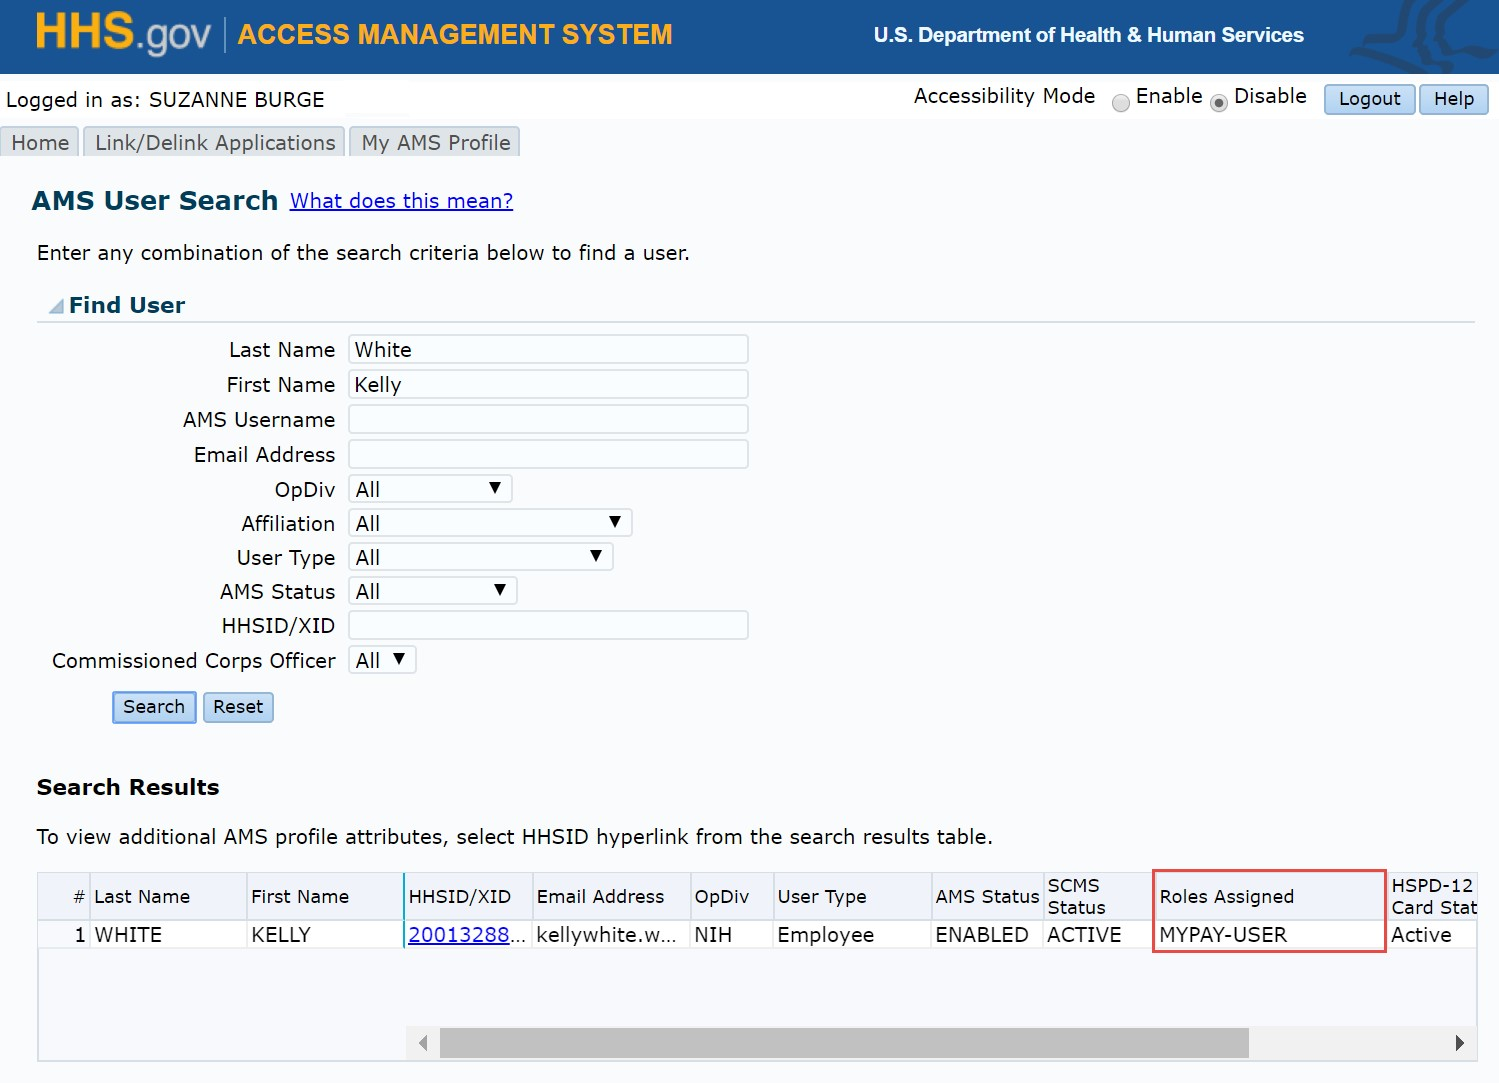 HHS AMS - How to Troubleshoot ITAS-related Issues With AMS Tools